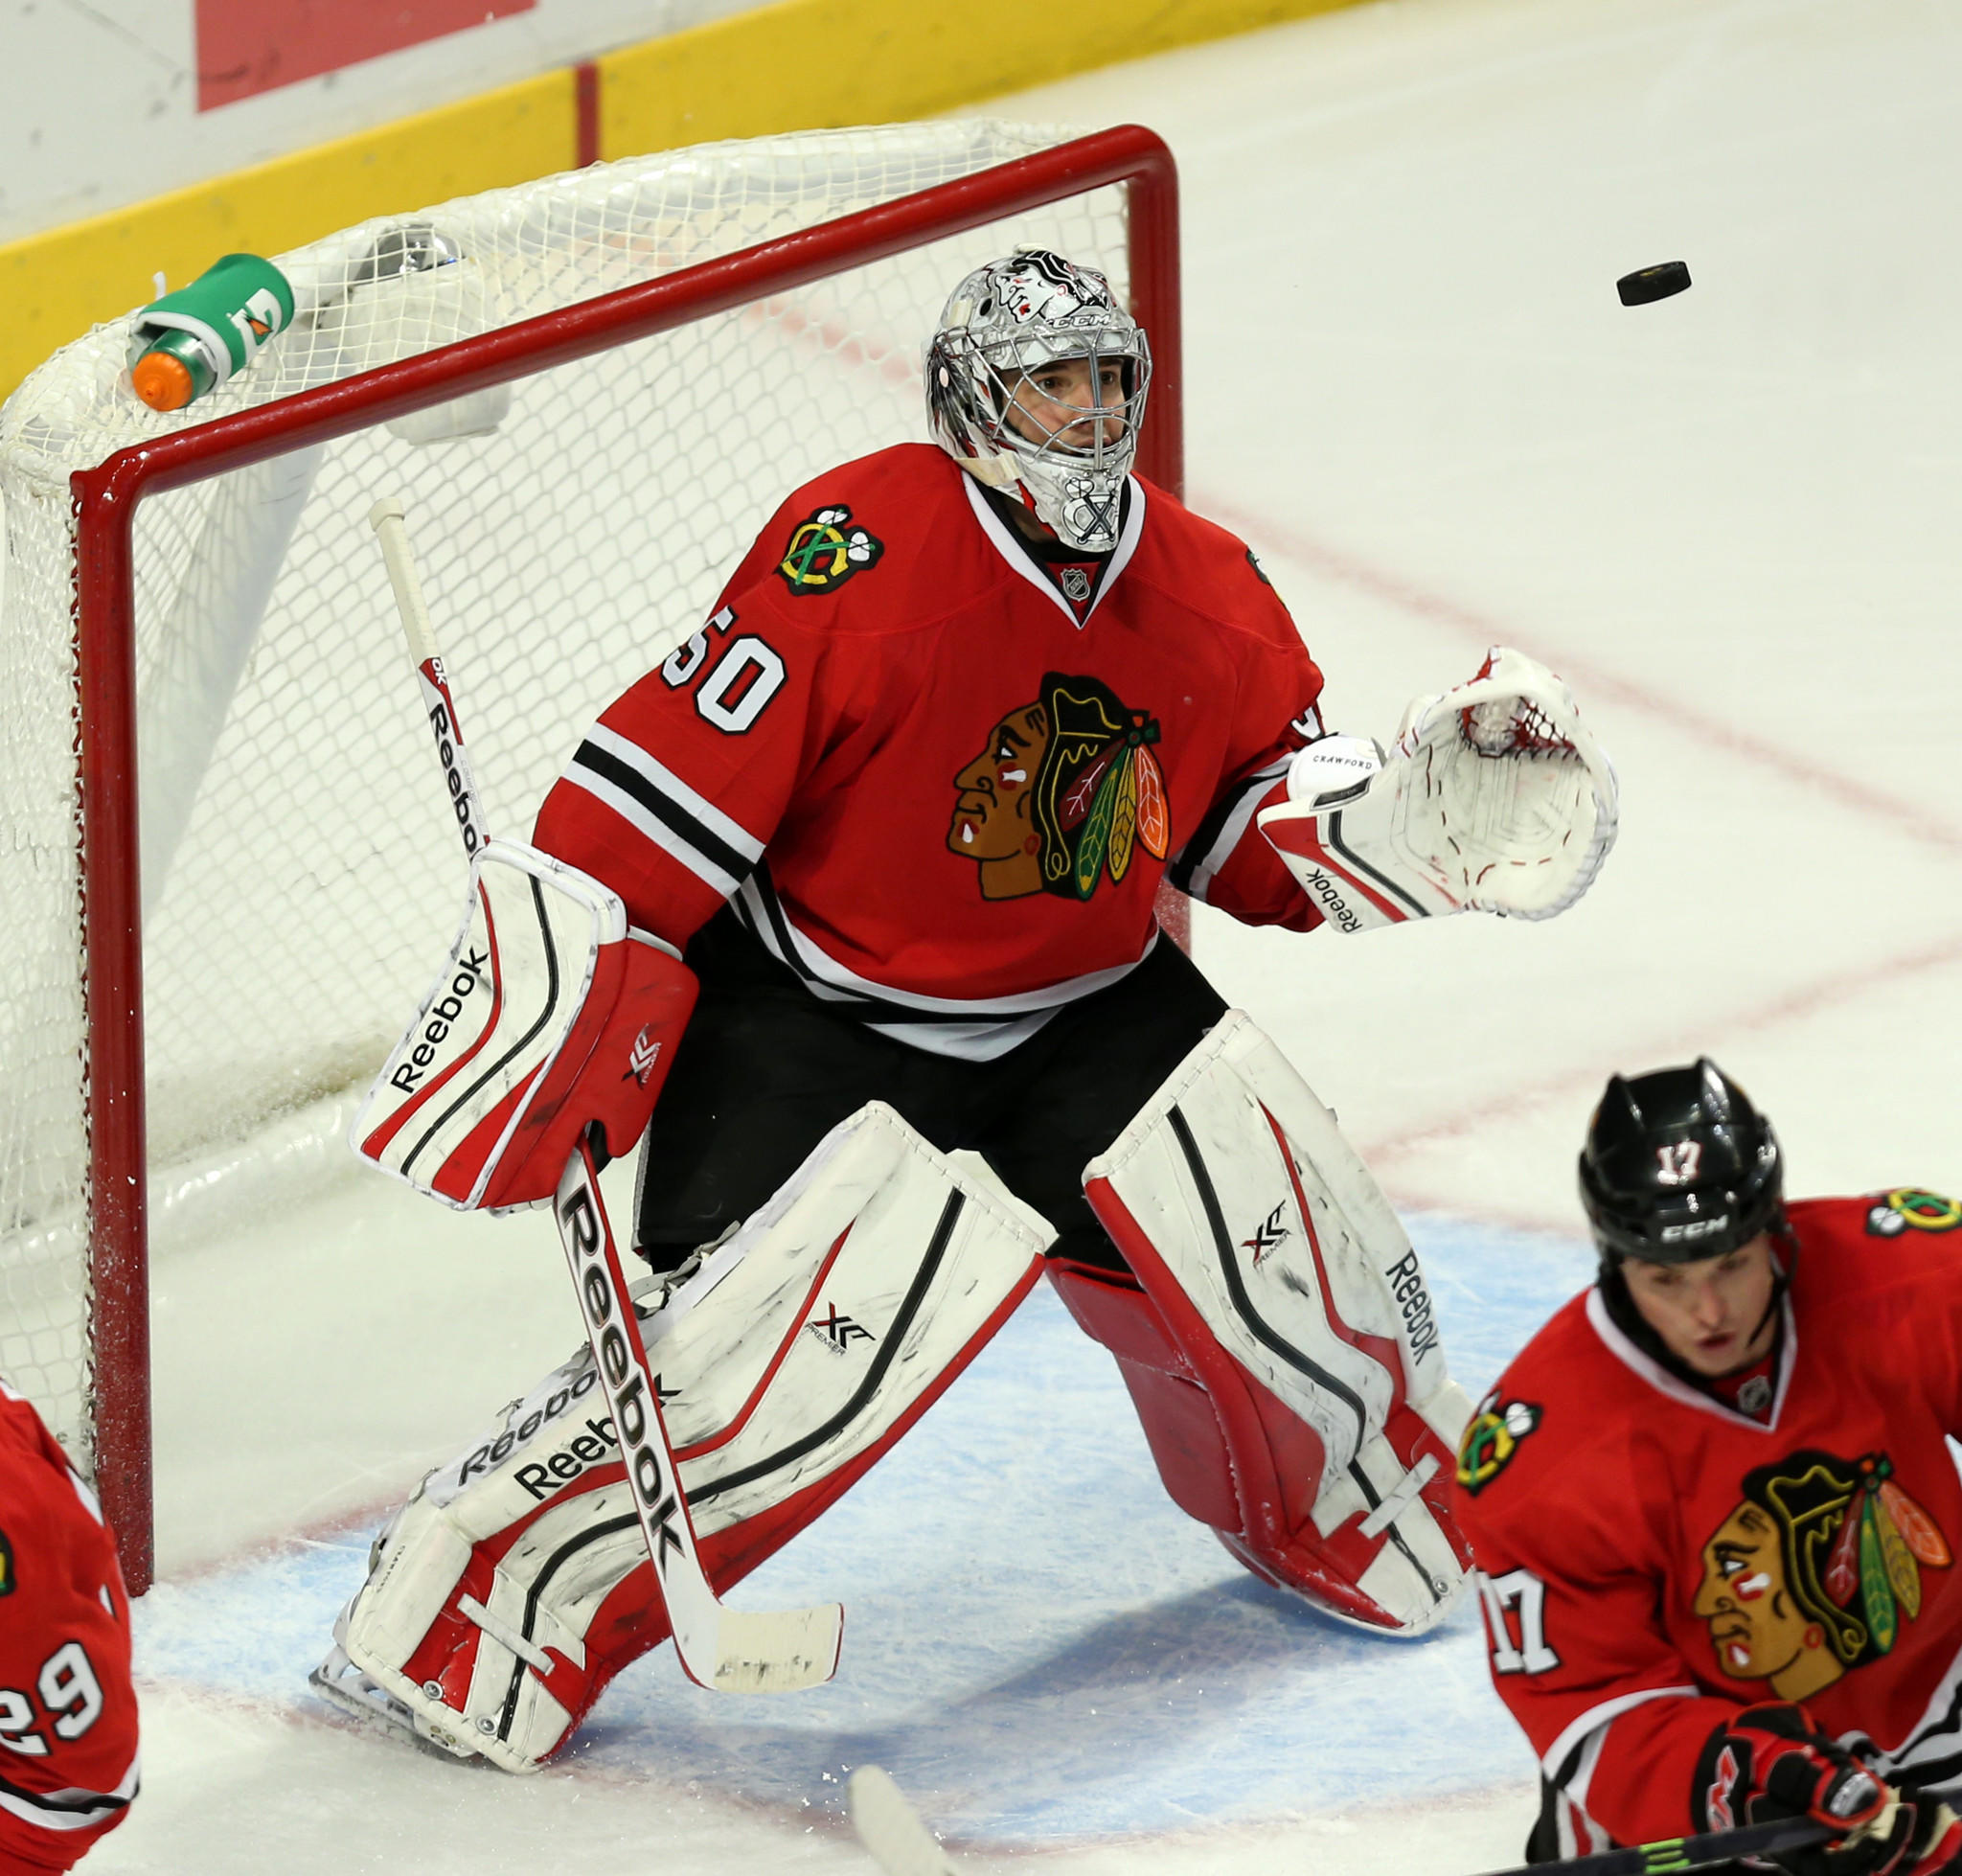 Chicago Blackhawks goalie Corey Crawford hopes to be back in action soon.